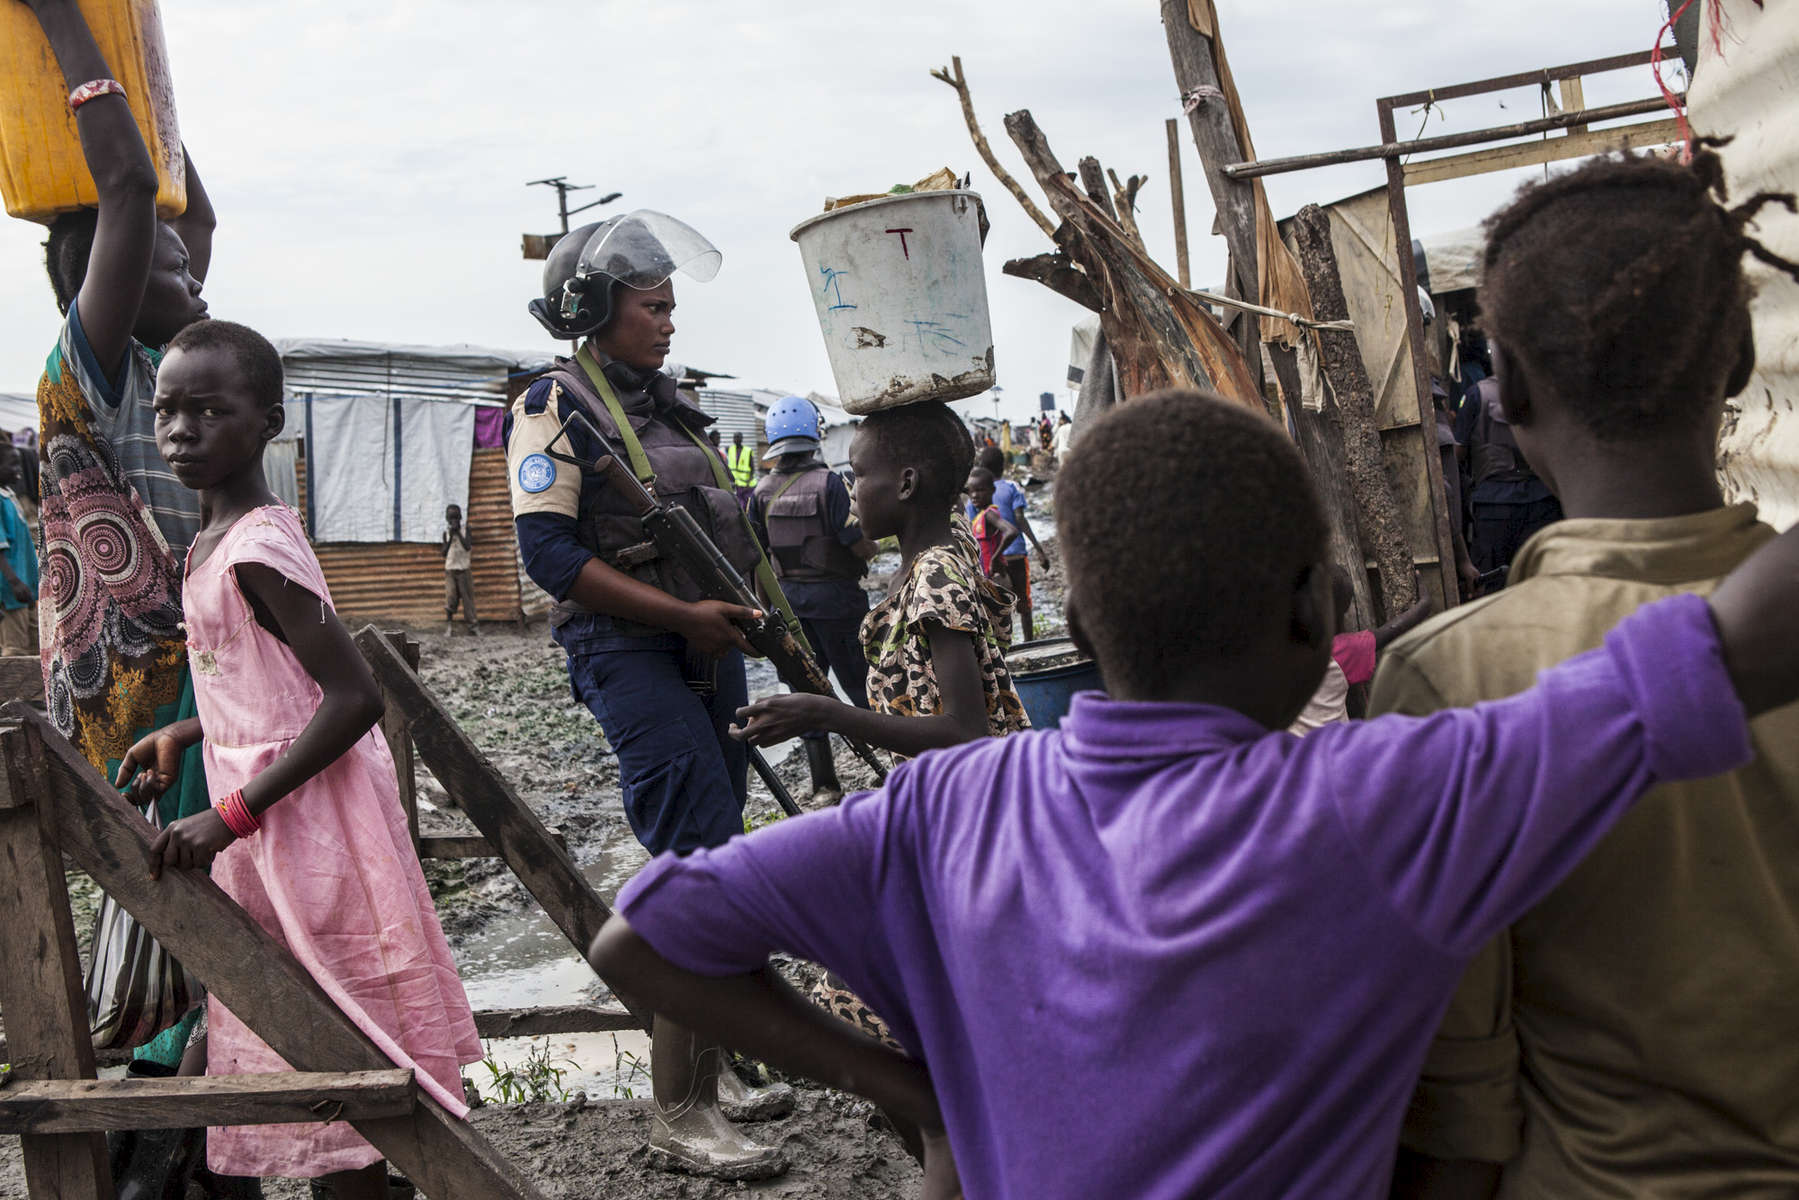 A member of the United Nations Police, UNPOL, stands guard during a routine search of contraband of the Protection of Civilians (POC) site at the United Nations Mission in South Sudan (UNMISS) compound in Malakal, South Sudan on Friday, July 15, 2016. The Malakal POC site houses over 32,000 displaced people mainly from the Shilluk and Nuer tribes. In February of this year, members of the Dinka tribe, who resided in the camp at the time, carried out a coordinated attack within the site leading to the destruction of hundreds of shelters and many deaths. Since then, most members of the Dinka tribe have fled to Malakal town where they occupy the homes of those still displaced. The UN has assured the displaced people that increased security measures around the camp will protect them from any further attack. Most of the displace are not convinced.